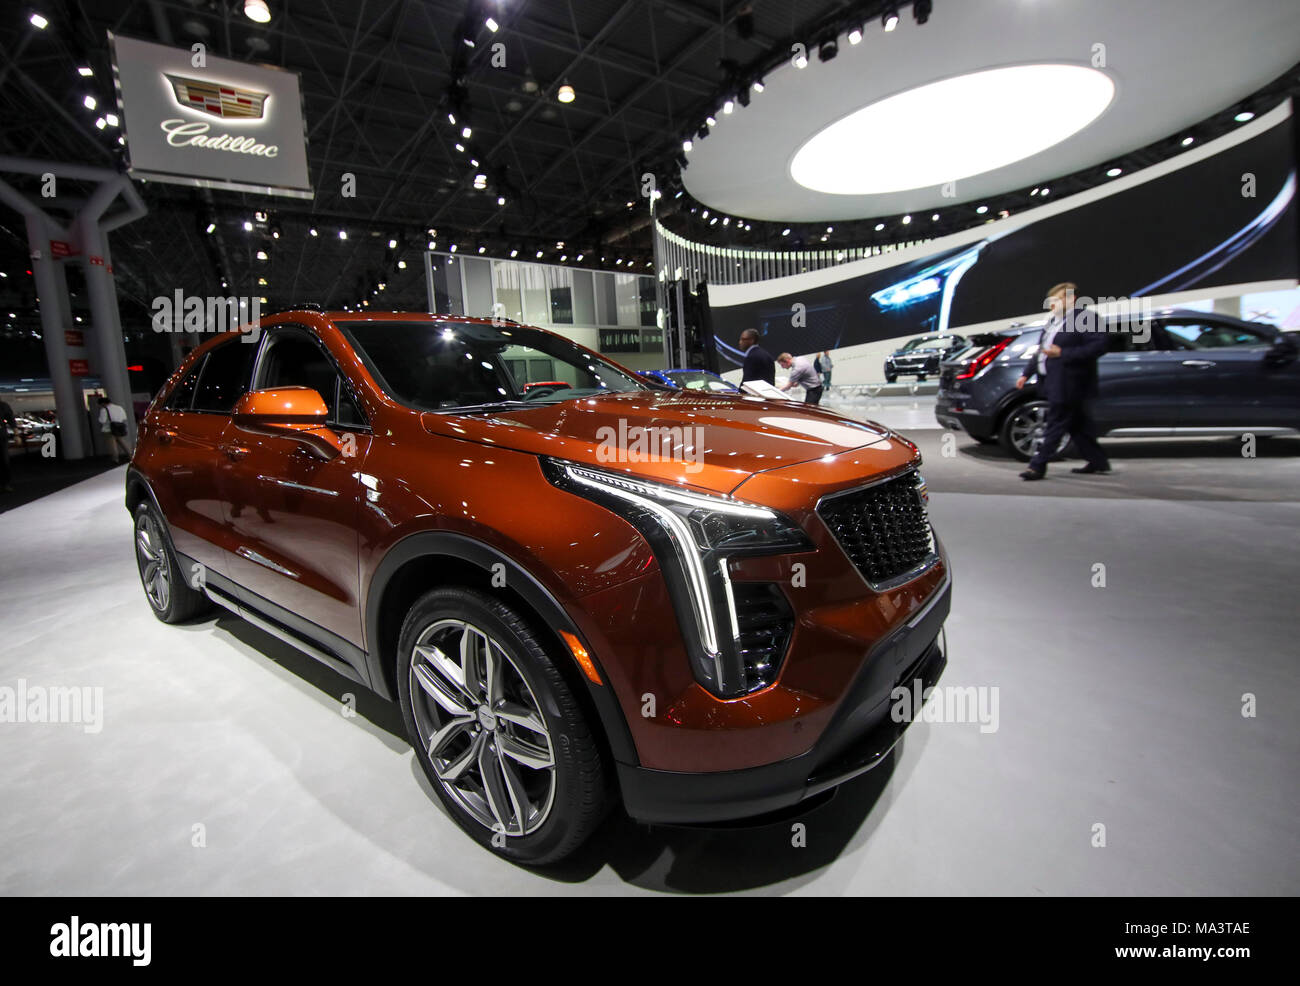 new york, usa. 29th mar, 2018. cadillac's latest suv is seen during